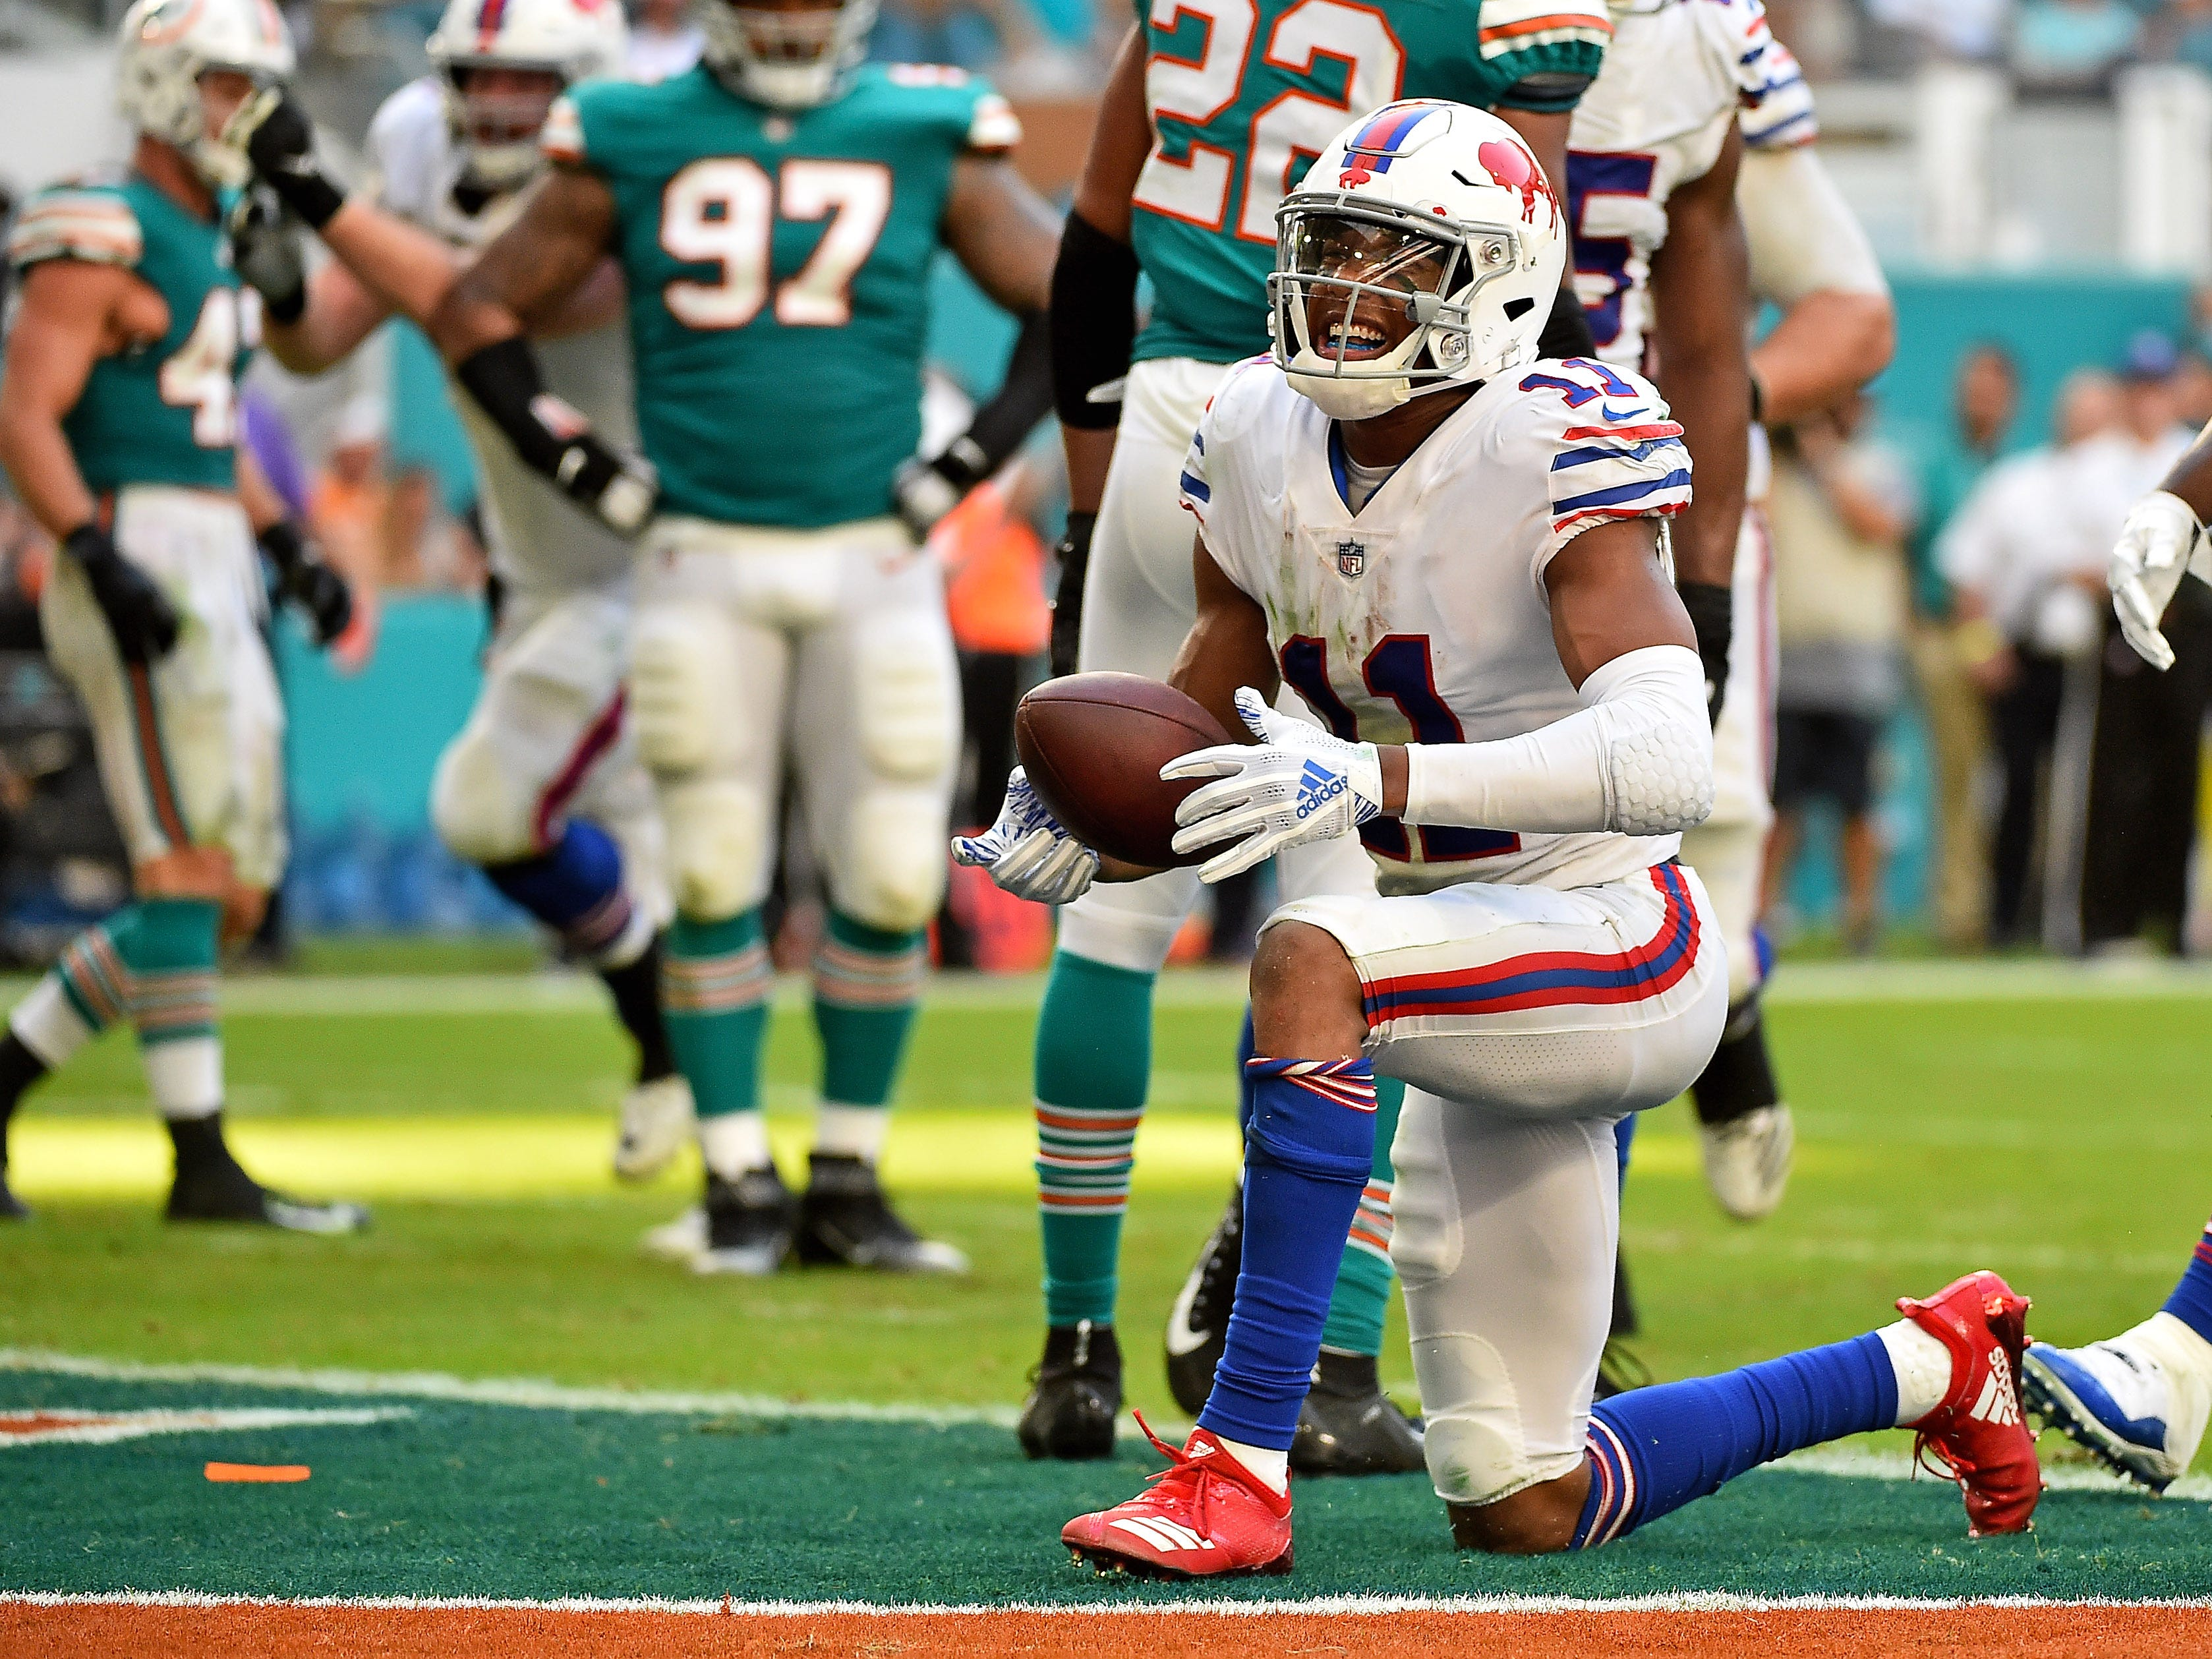 Buffalo Bills wide receiver Zay Jones  reacts after scoring a two-point conversion during the second half against the Miami Dolphins at Hard Rock Stadium on Sunday.